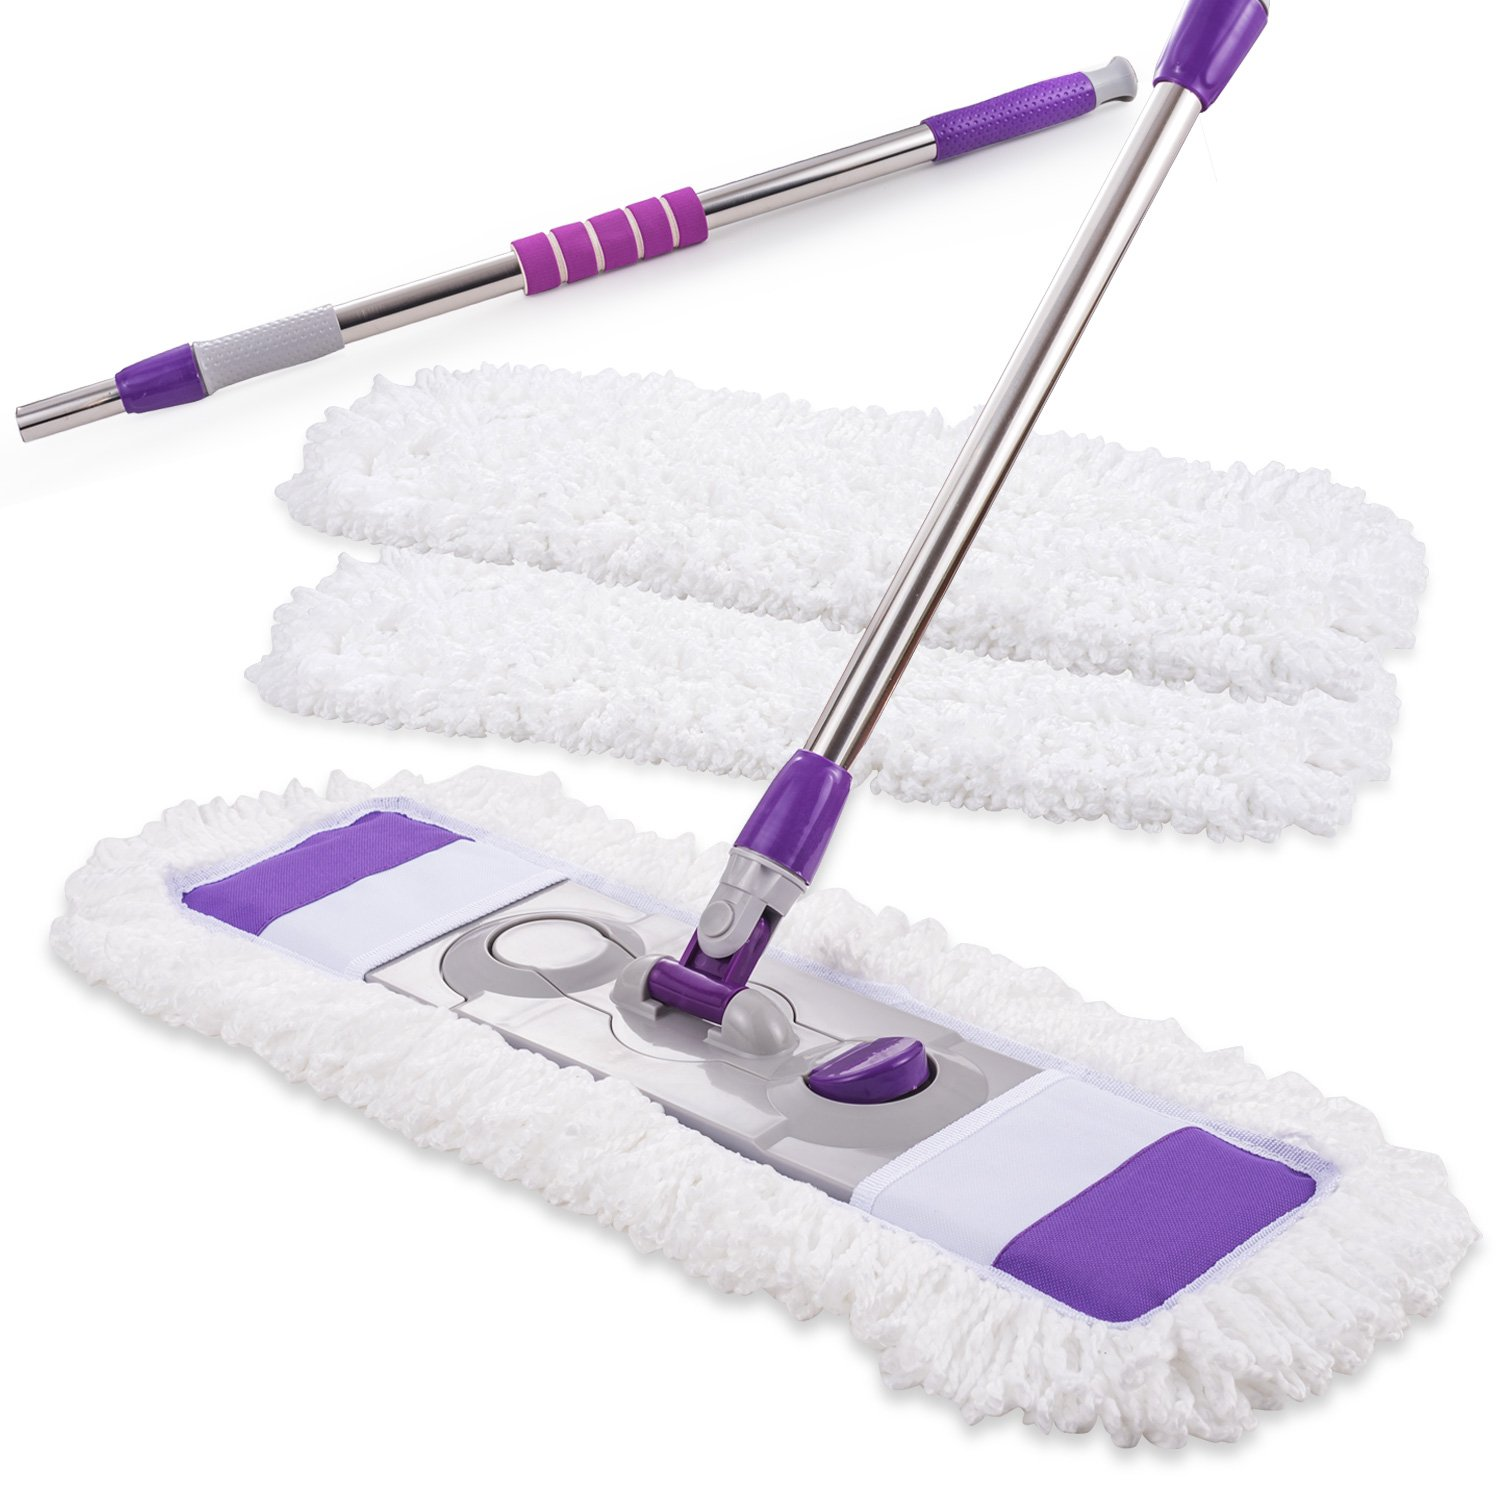 Microfiber Hardwood Floor Mop Kit with 3 Reusable Washable Pads, 360 Degree Professional Handle Flat Mop for Wet and Dry Wood Floor Cleaning, Kitchen, Bathroom, Home, Office, Hardwood, Laminate, Tiles